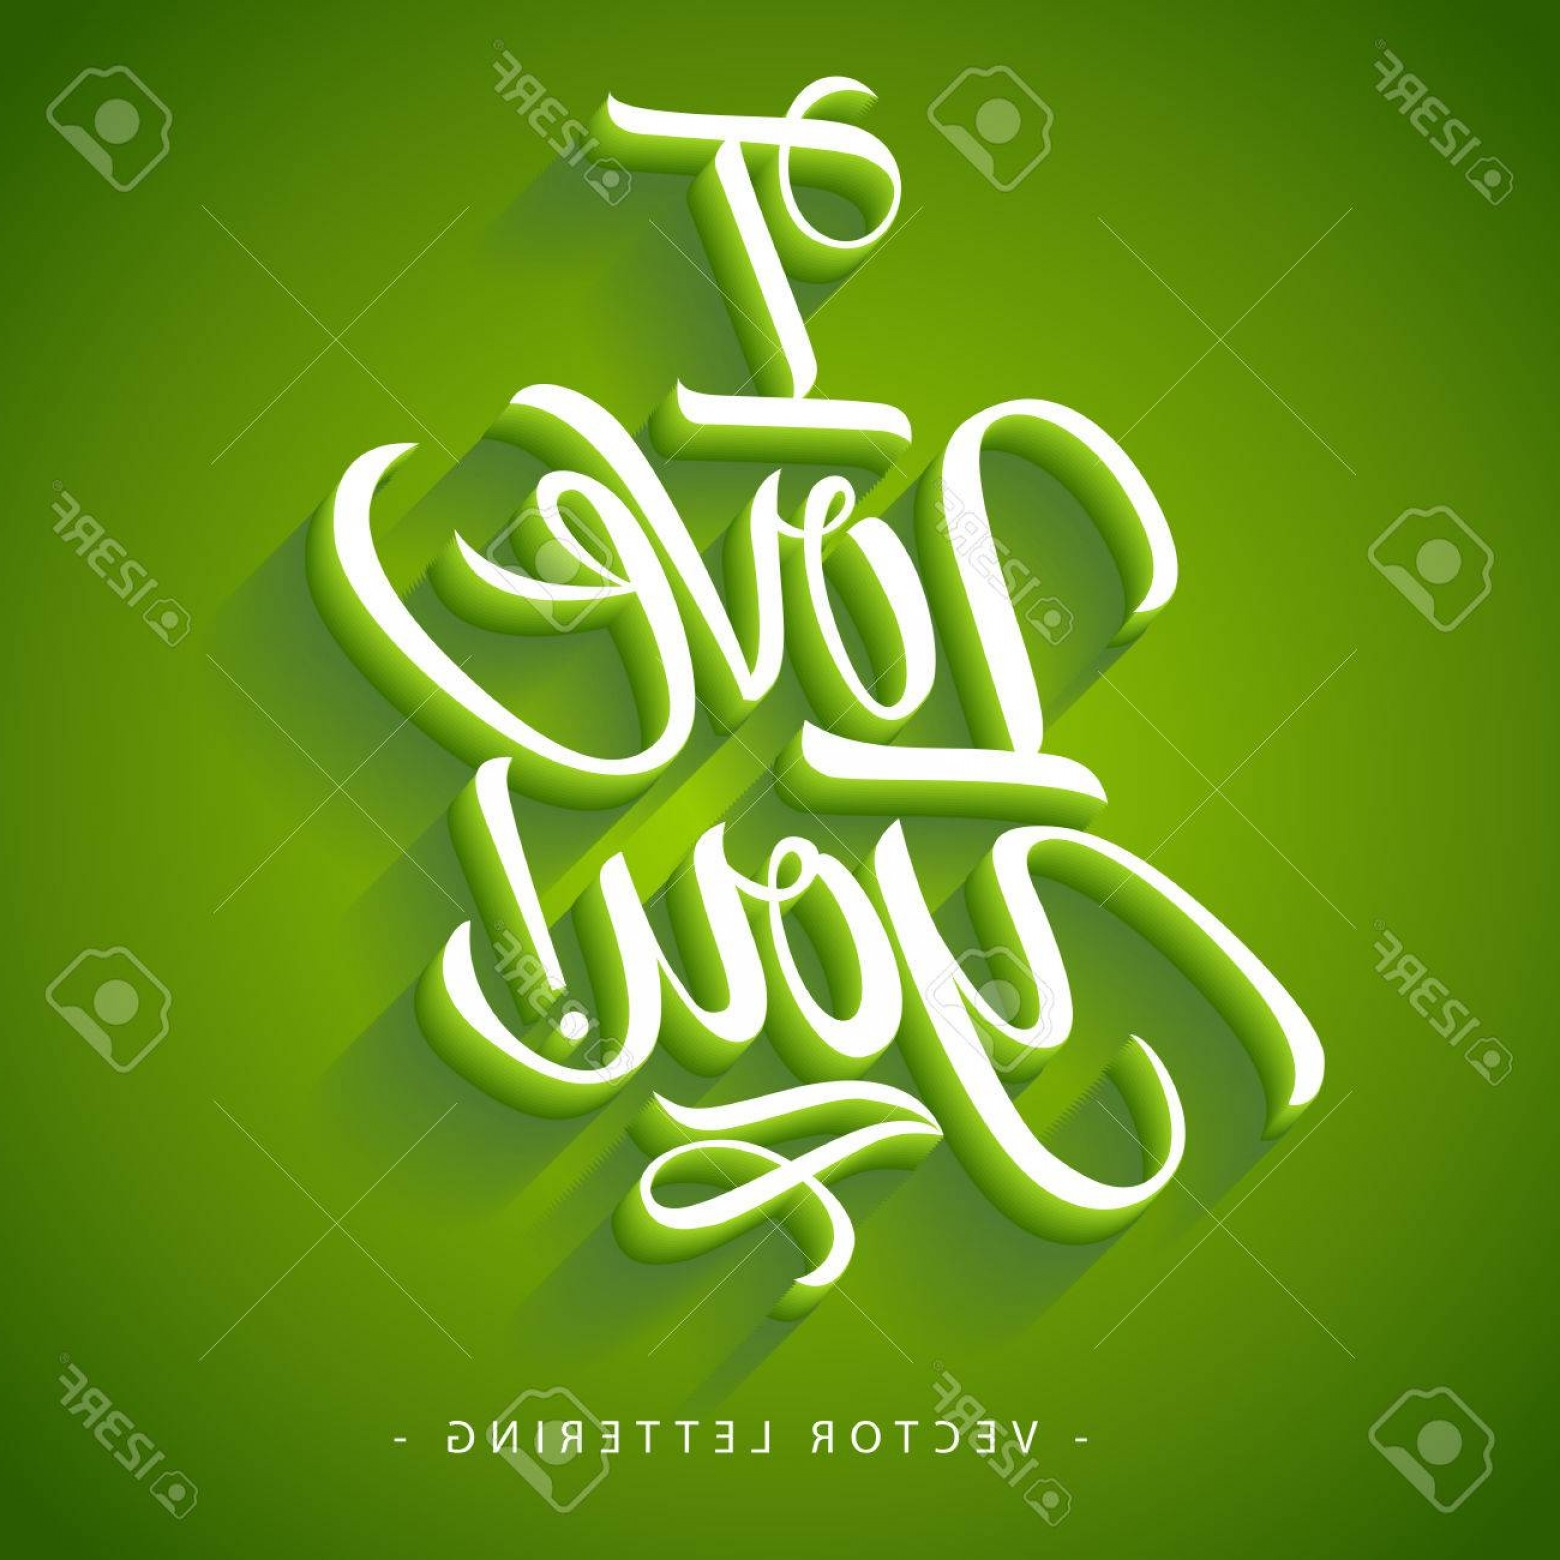 I Love You Mark Vector: Photostock Vector White I Love You Inscription With Exclamation Mark Isolated On Green Background